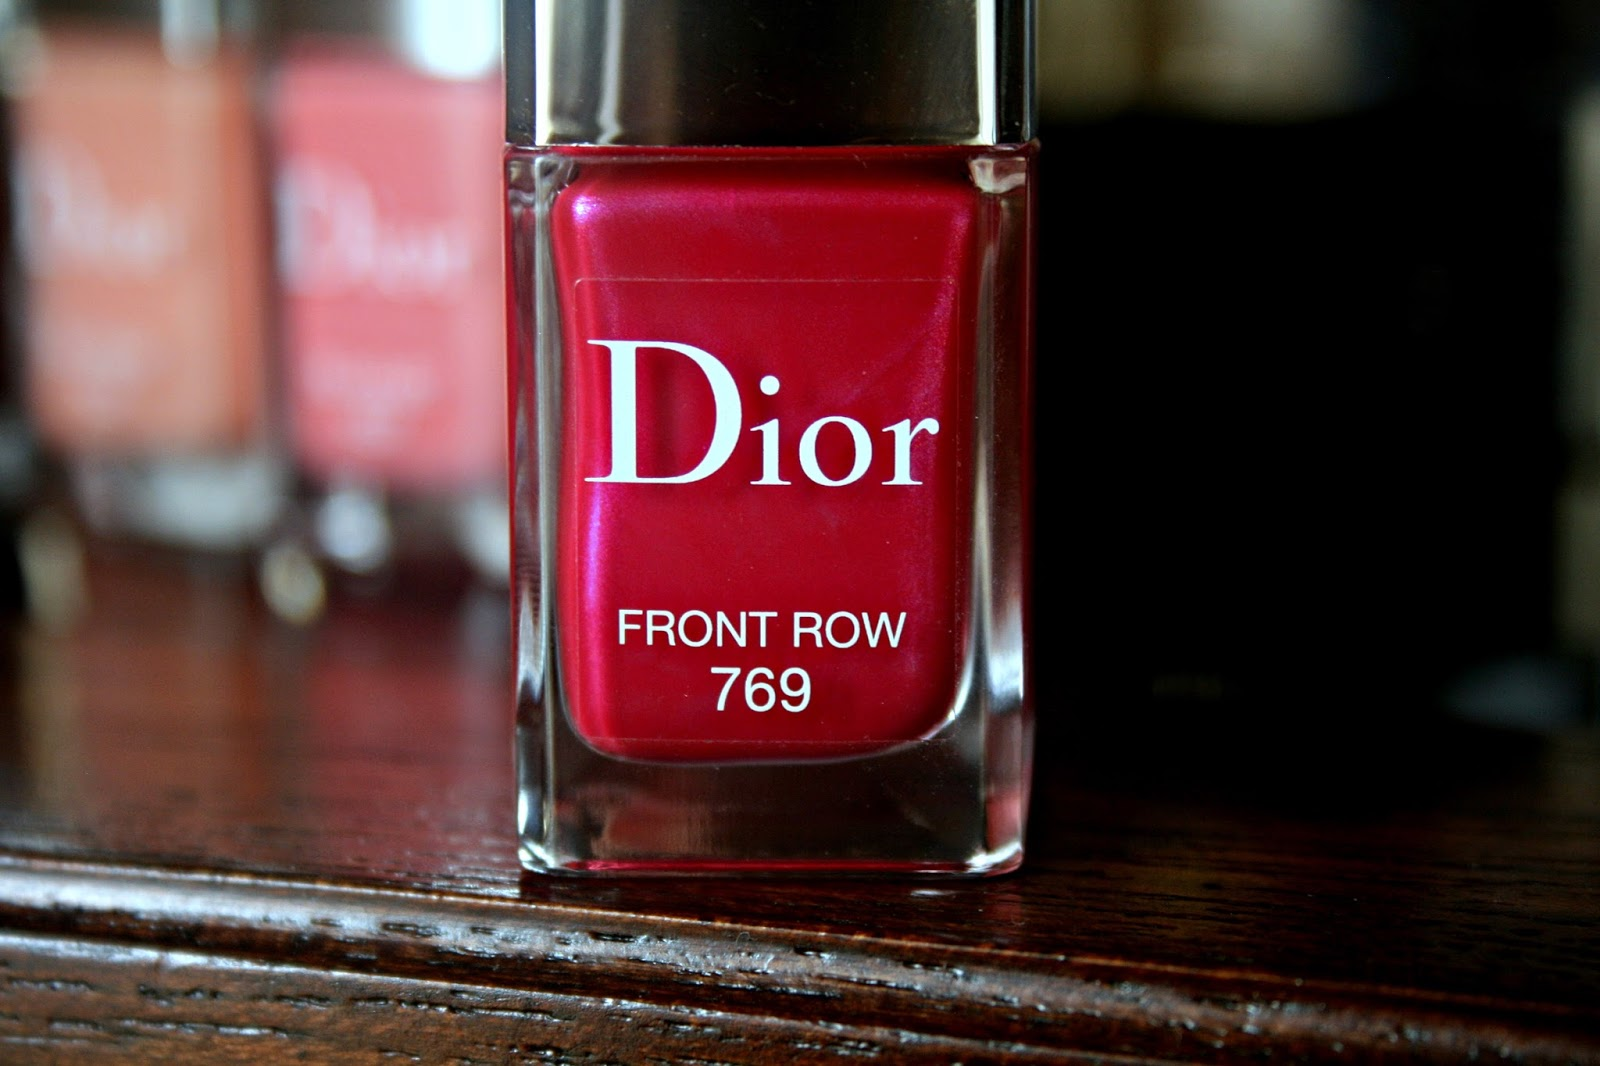 Dior Vernis Couture Colour Gel Shine and Long Wear Nail Lacquer Front Row 769